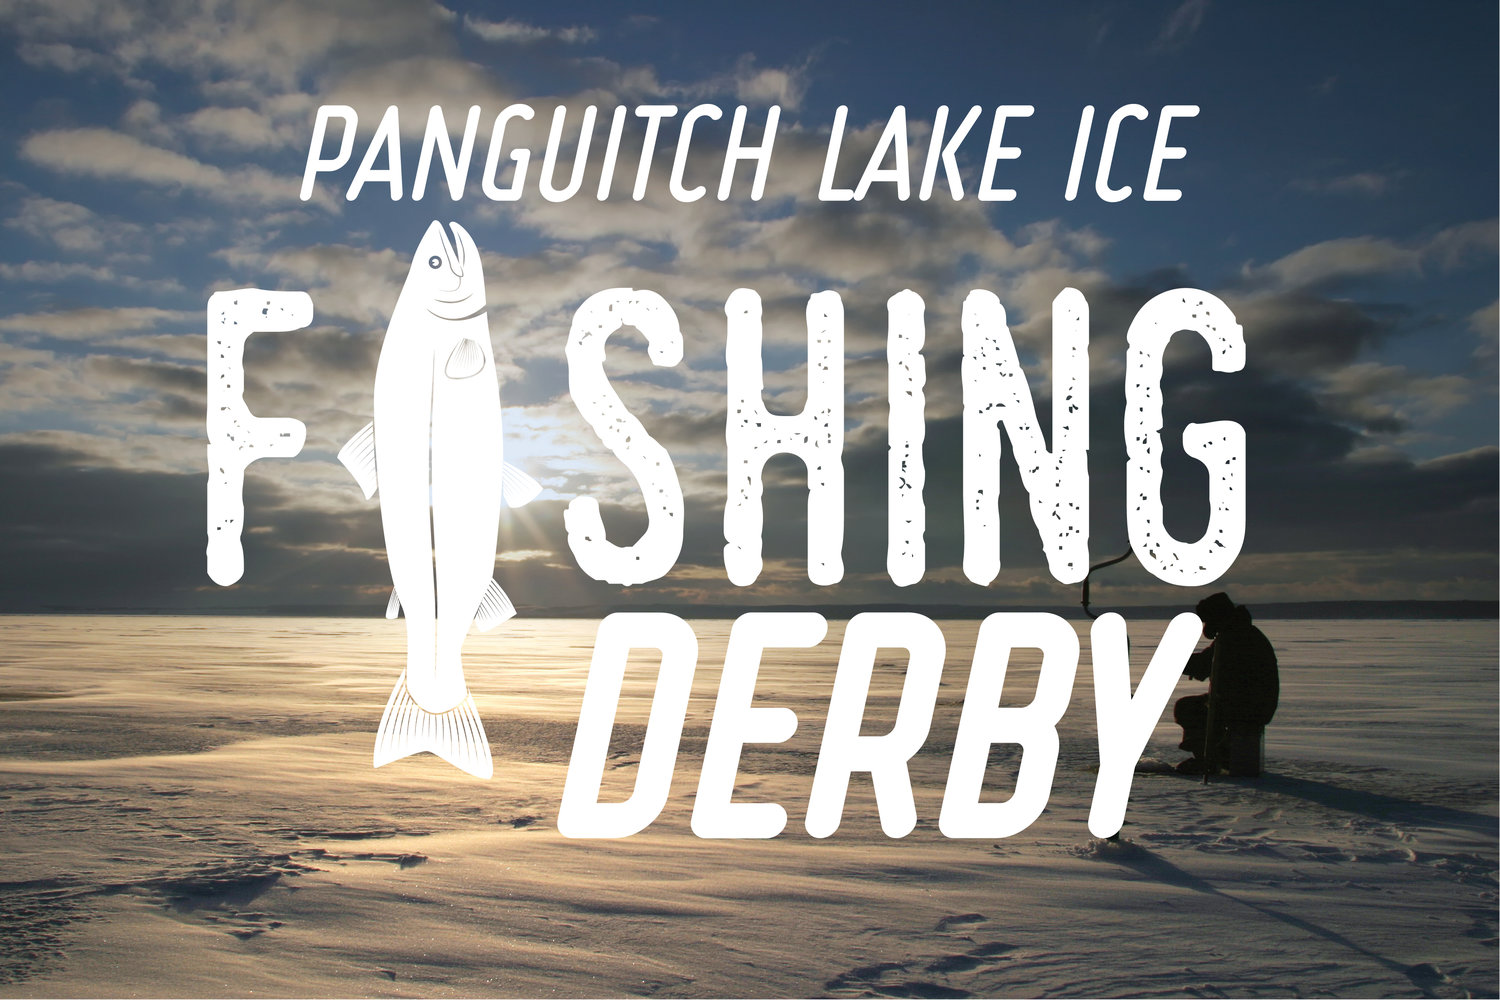 Panguitch Lake Ice Fishing Derby